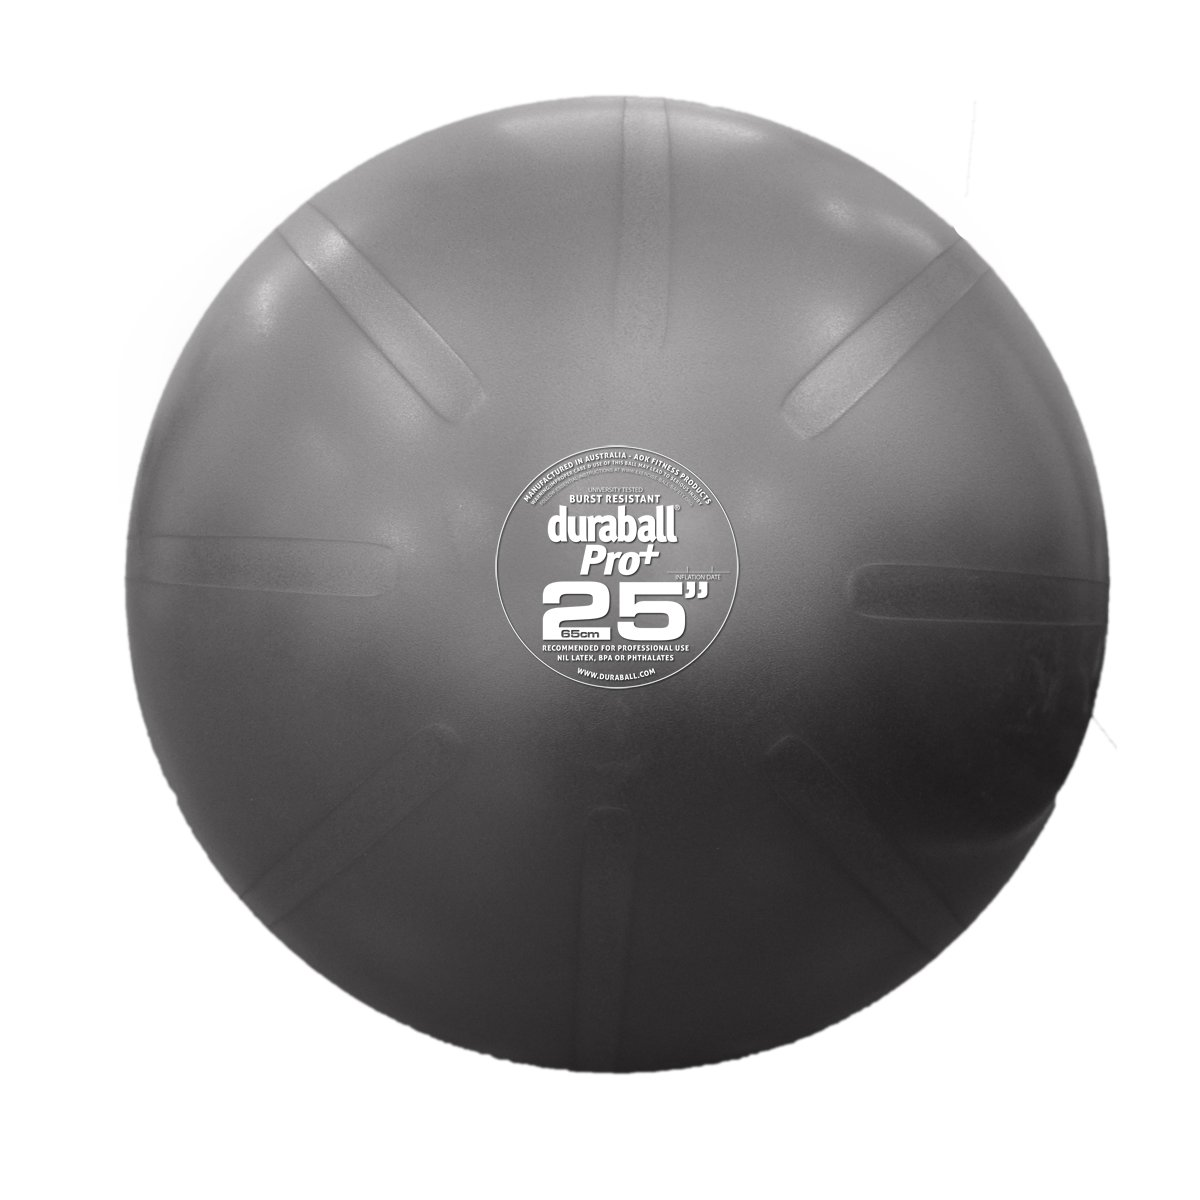 """Fitterfirst Duraball Pro Exercise Ball - 25"""" - Silver by Fitterfirst (Image #1)"""